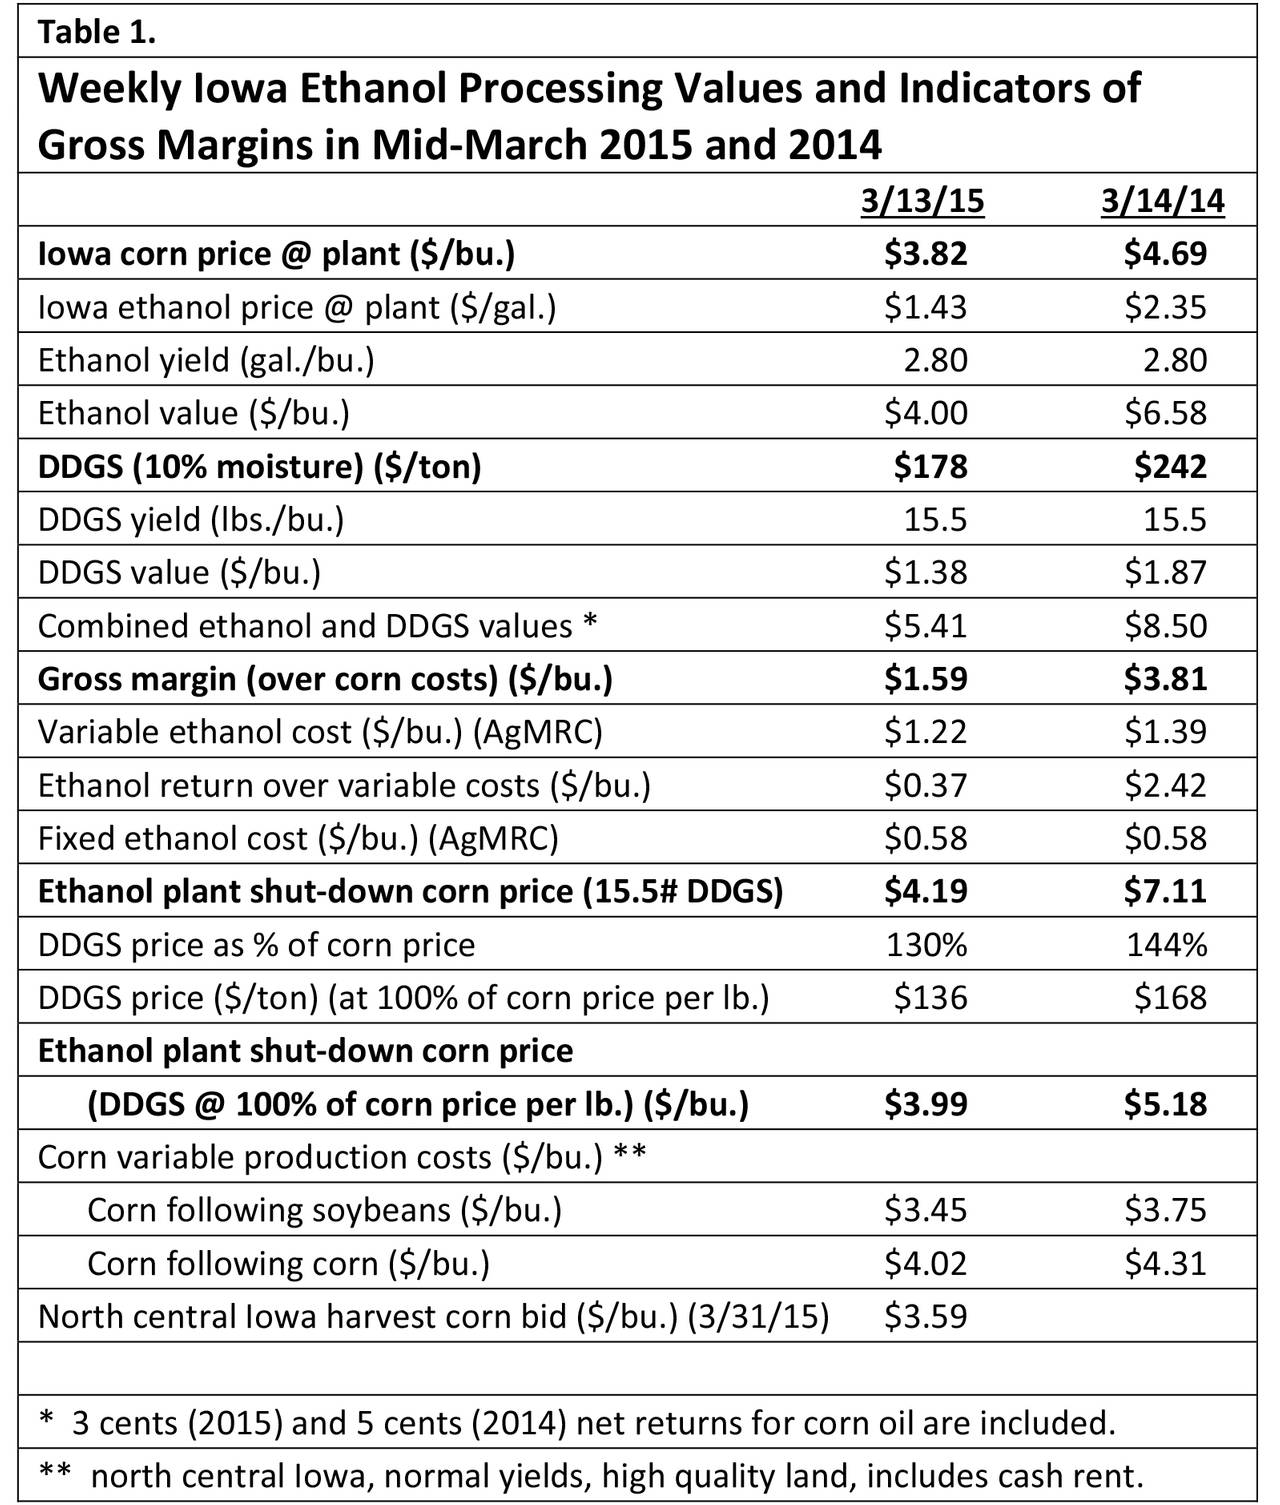 Weekly Iowa Ethanol processing values and indicators of gross margins in mid-march 2015 and 2014